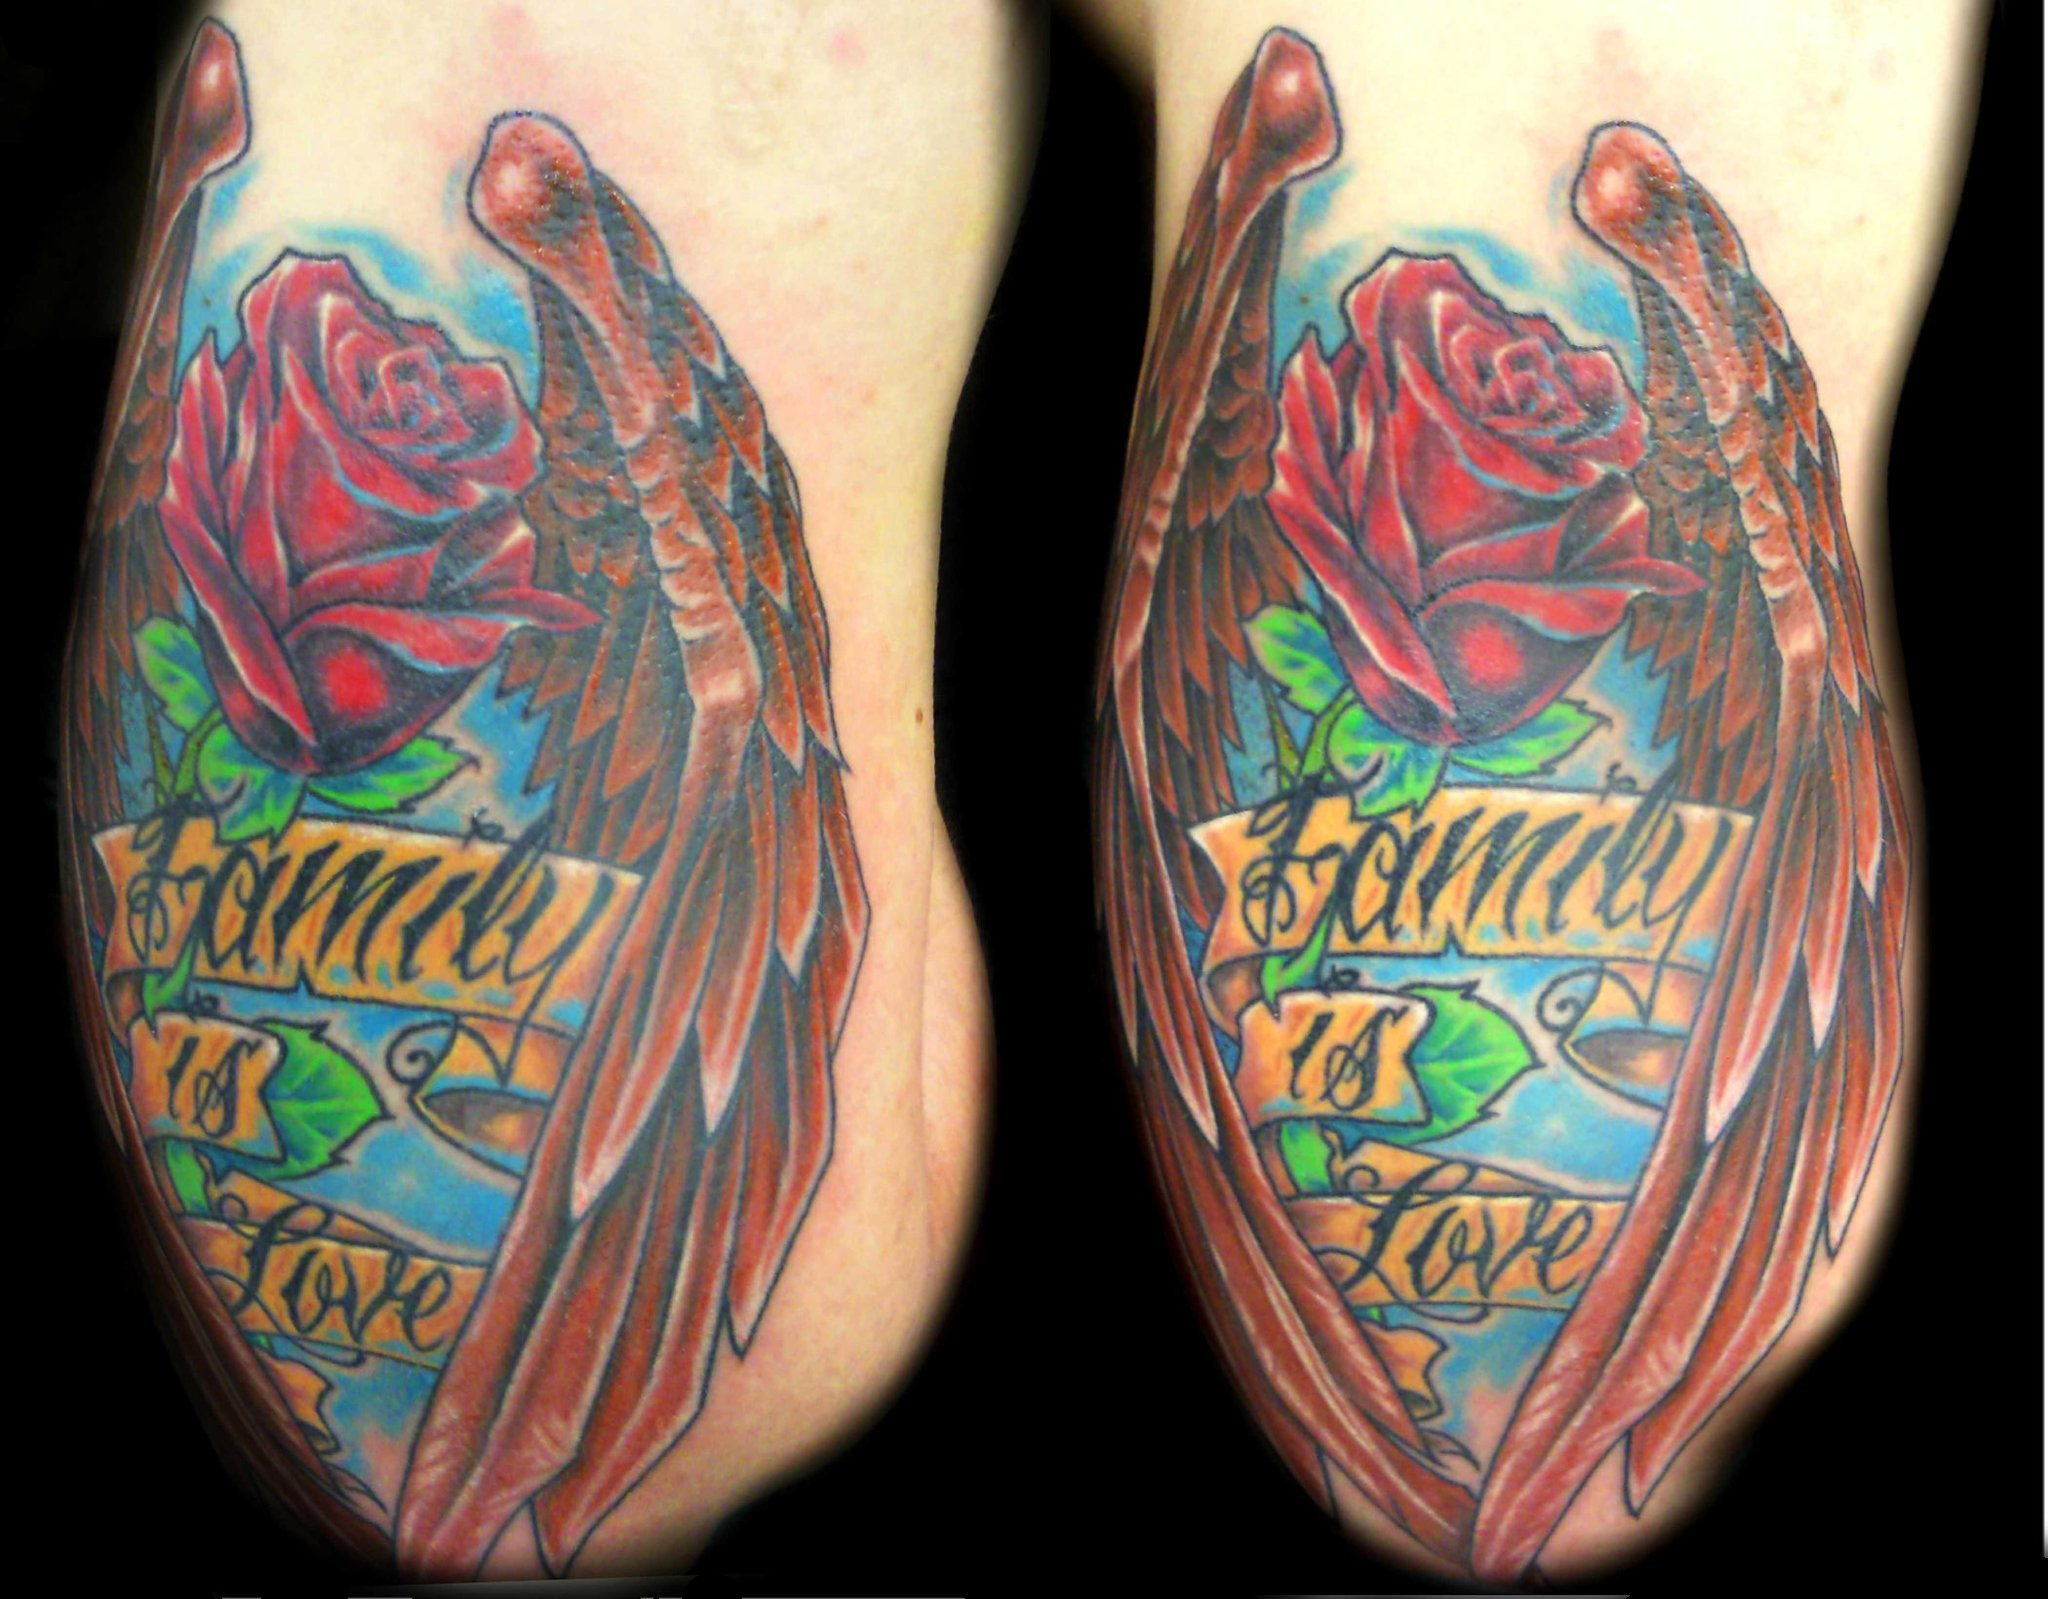 rose wings - back of arm